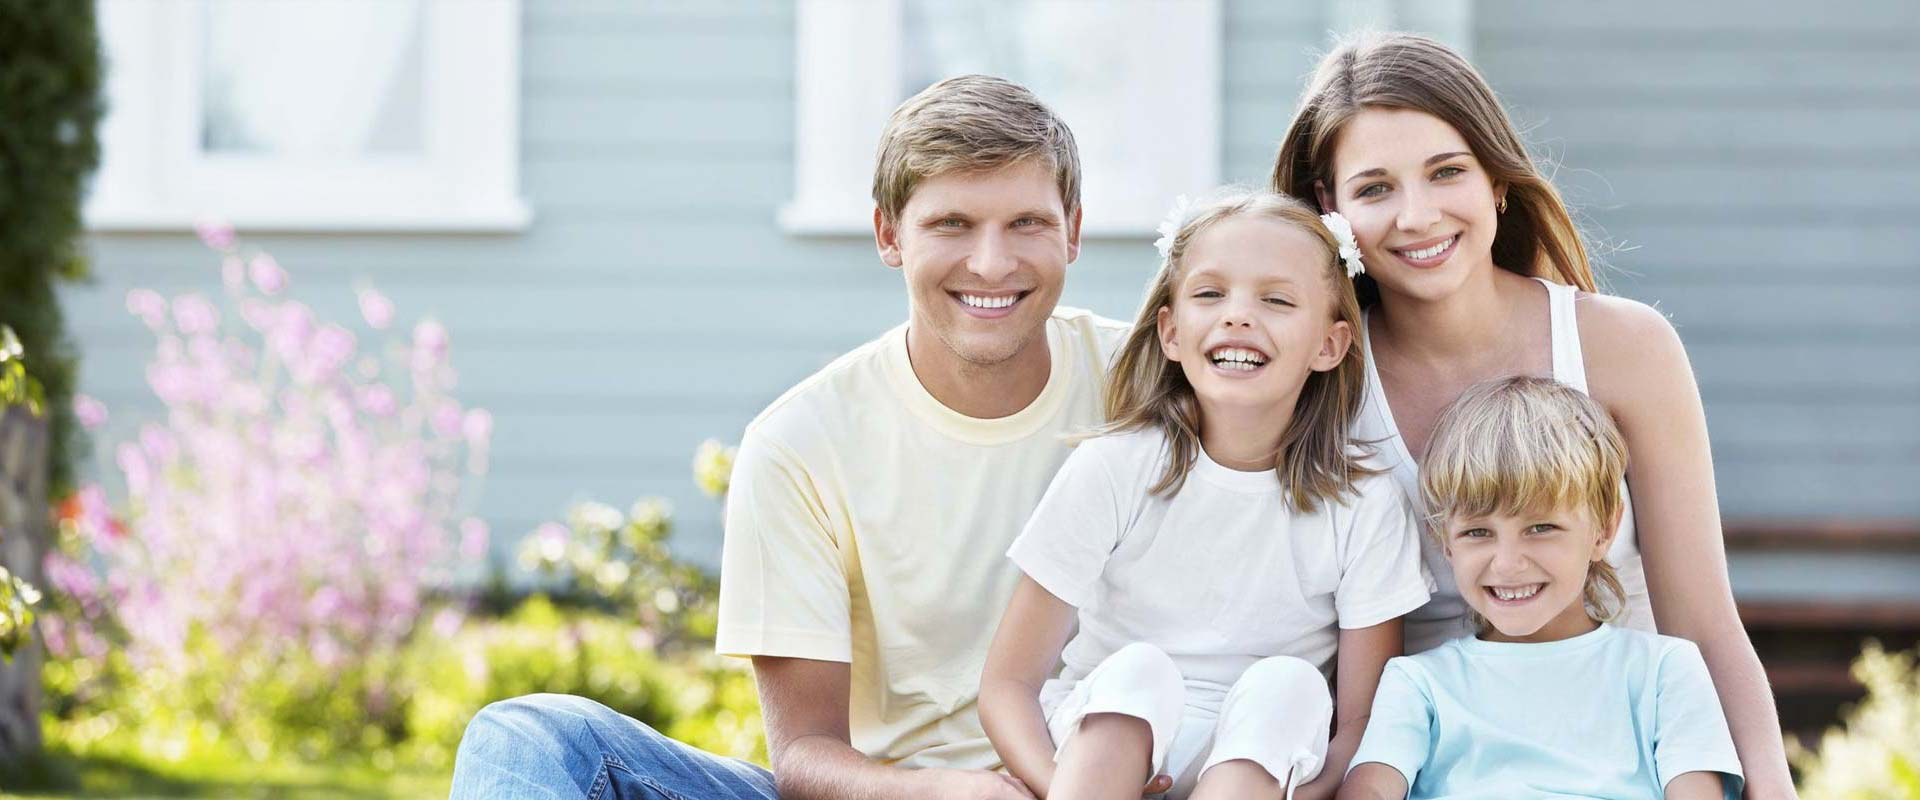 Term Life Insurance in Ontario